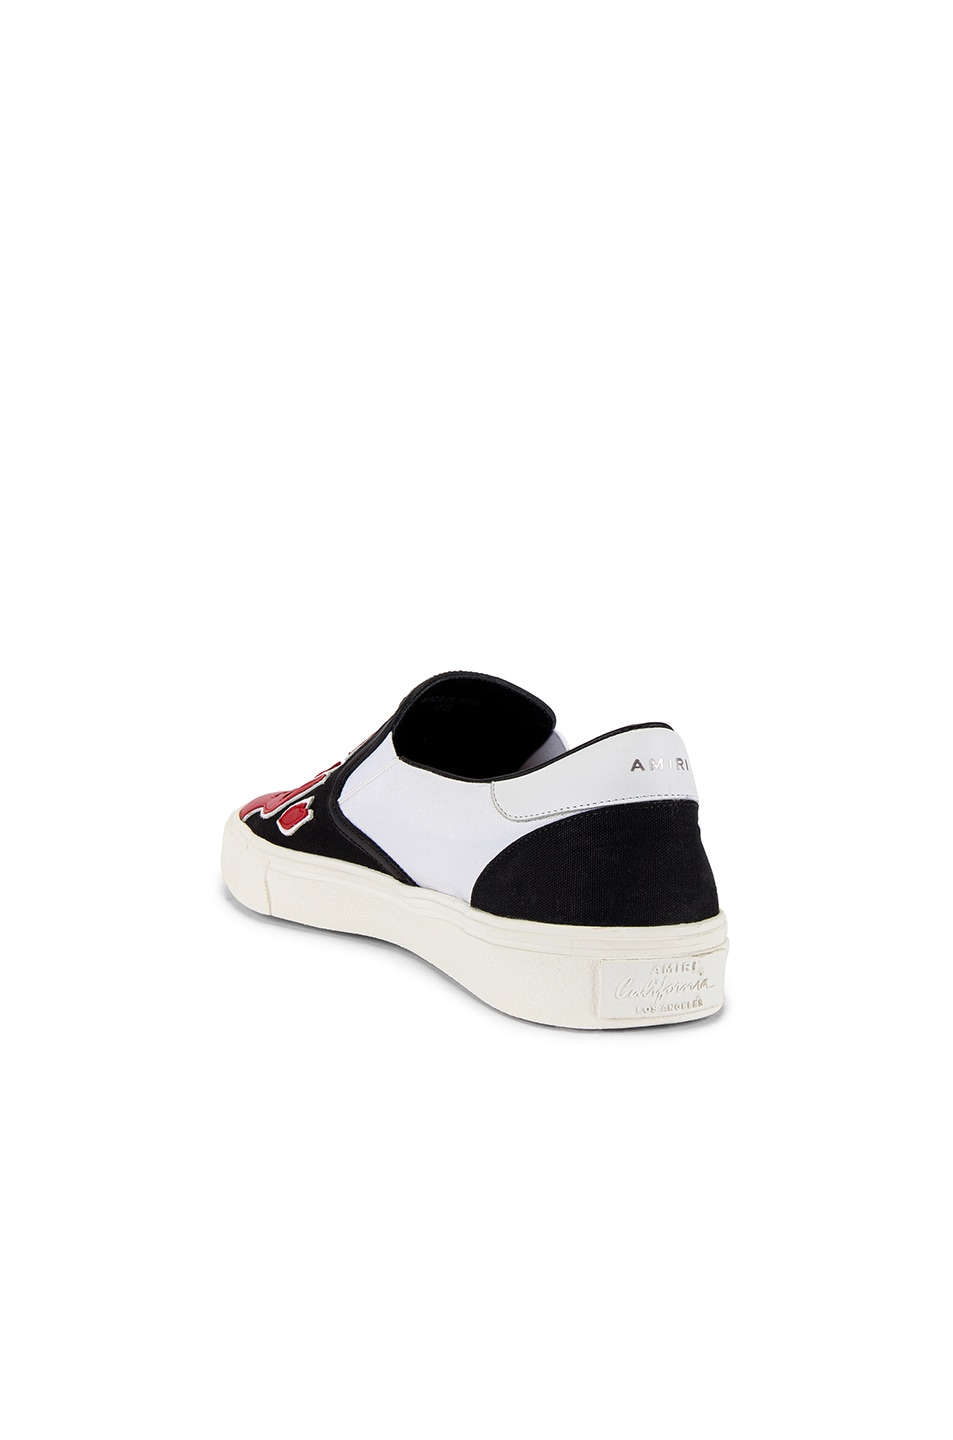 Image 3 of Amiri Flame Slip On in Black & White & Red